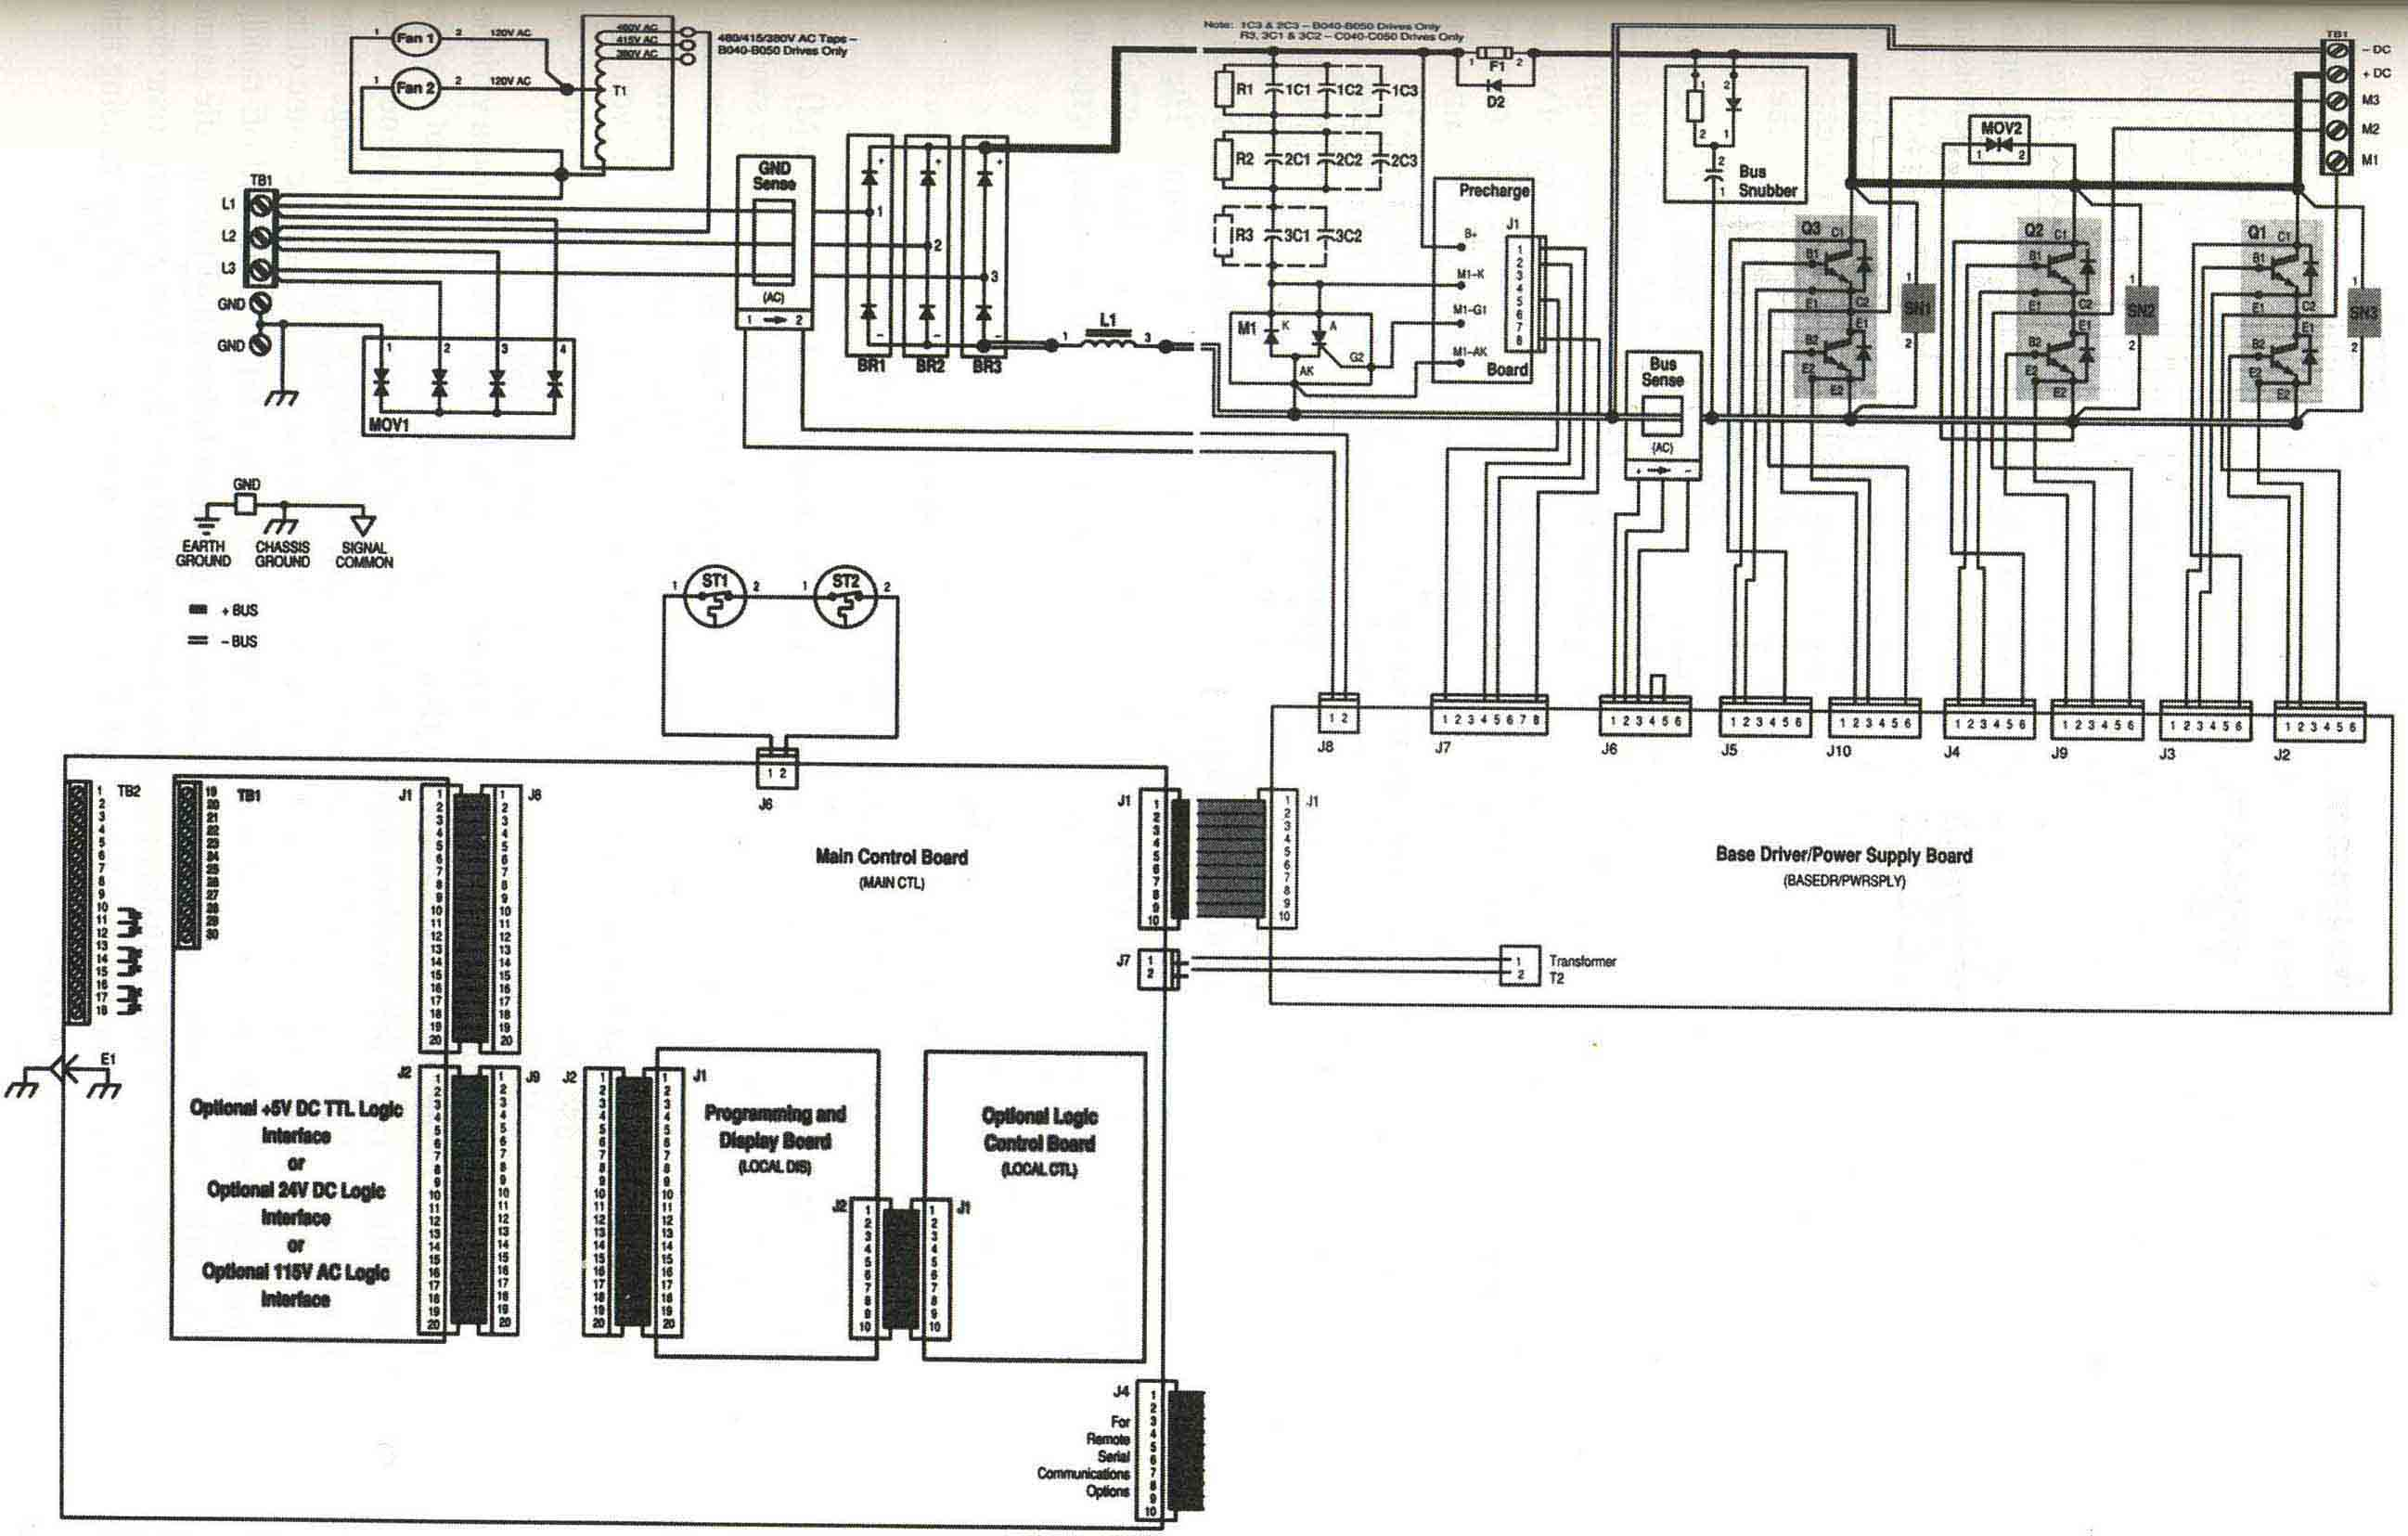 wiring schematics for a 1987 416 cat wiring diagram data oreo  wiring schematics for a 1987 416 cat wiring library ac drive wiring auto electrical wiring diagram